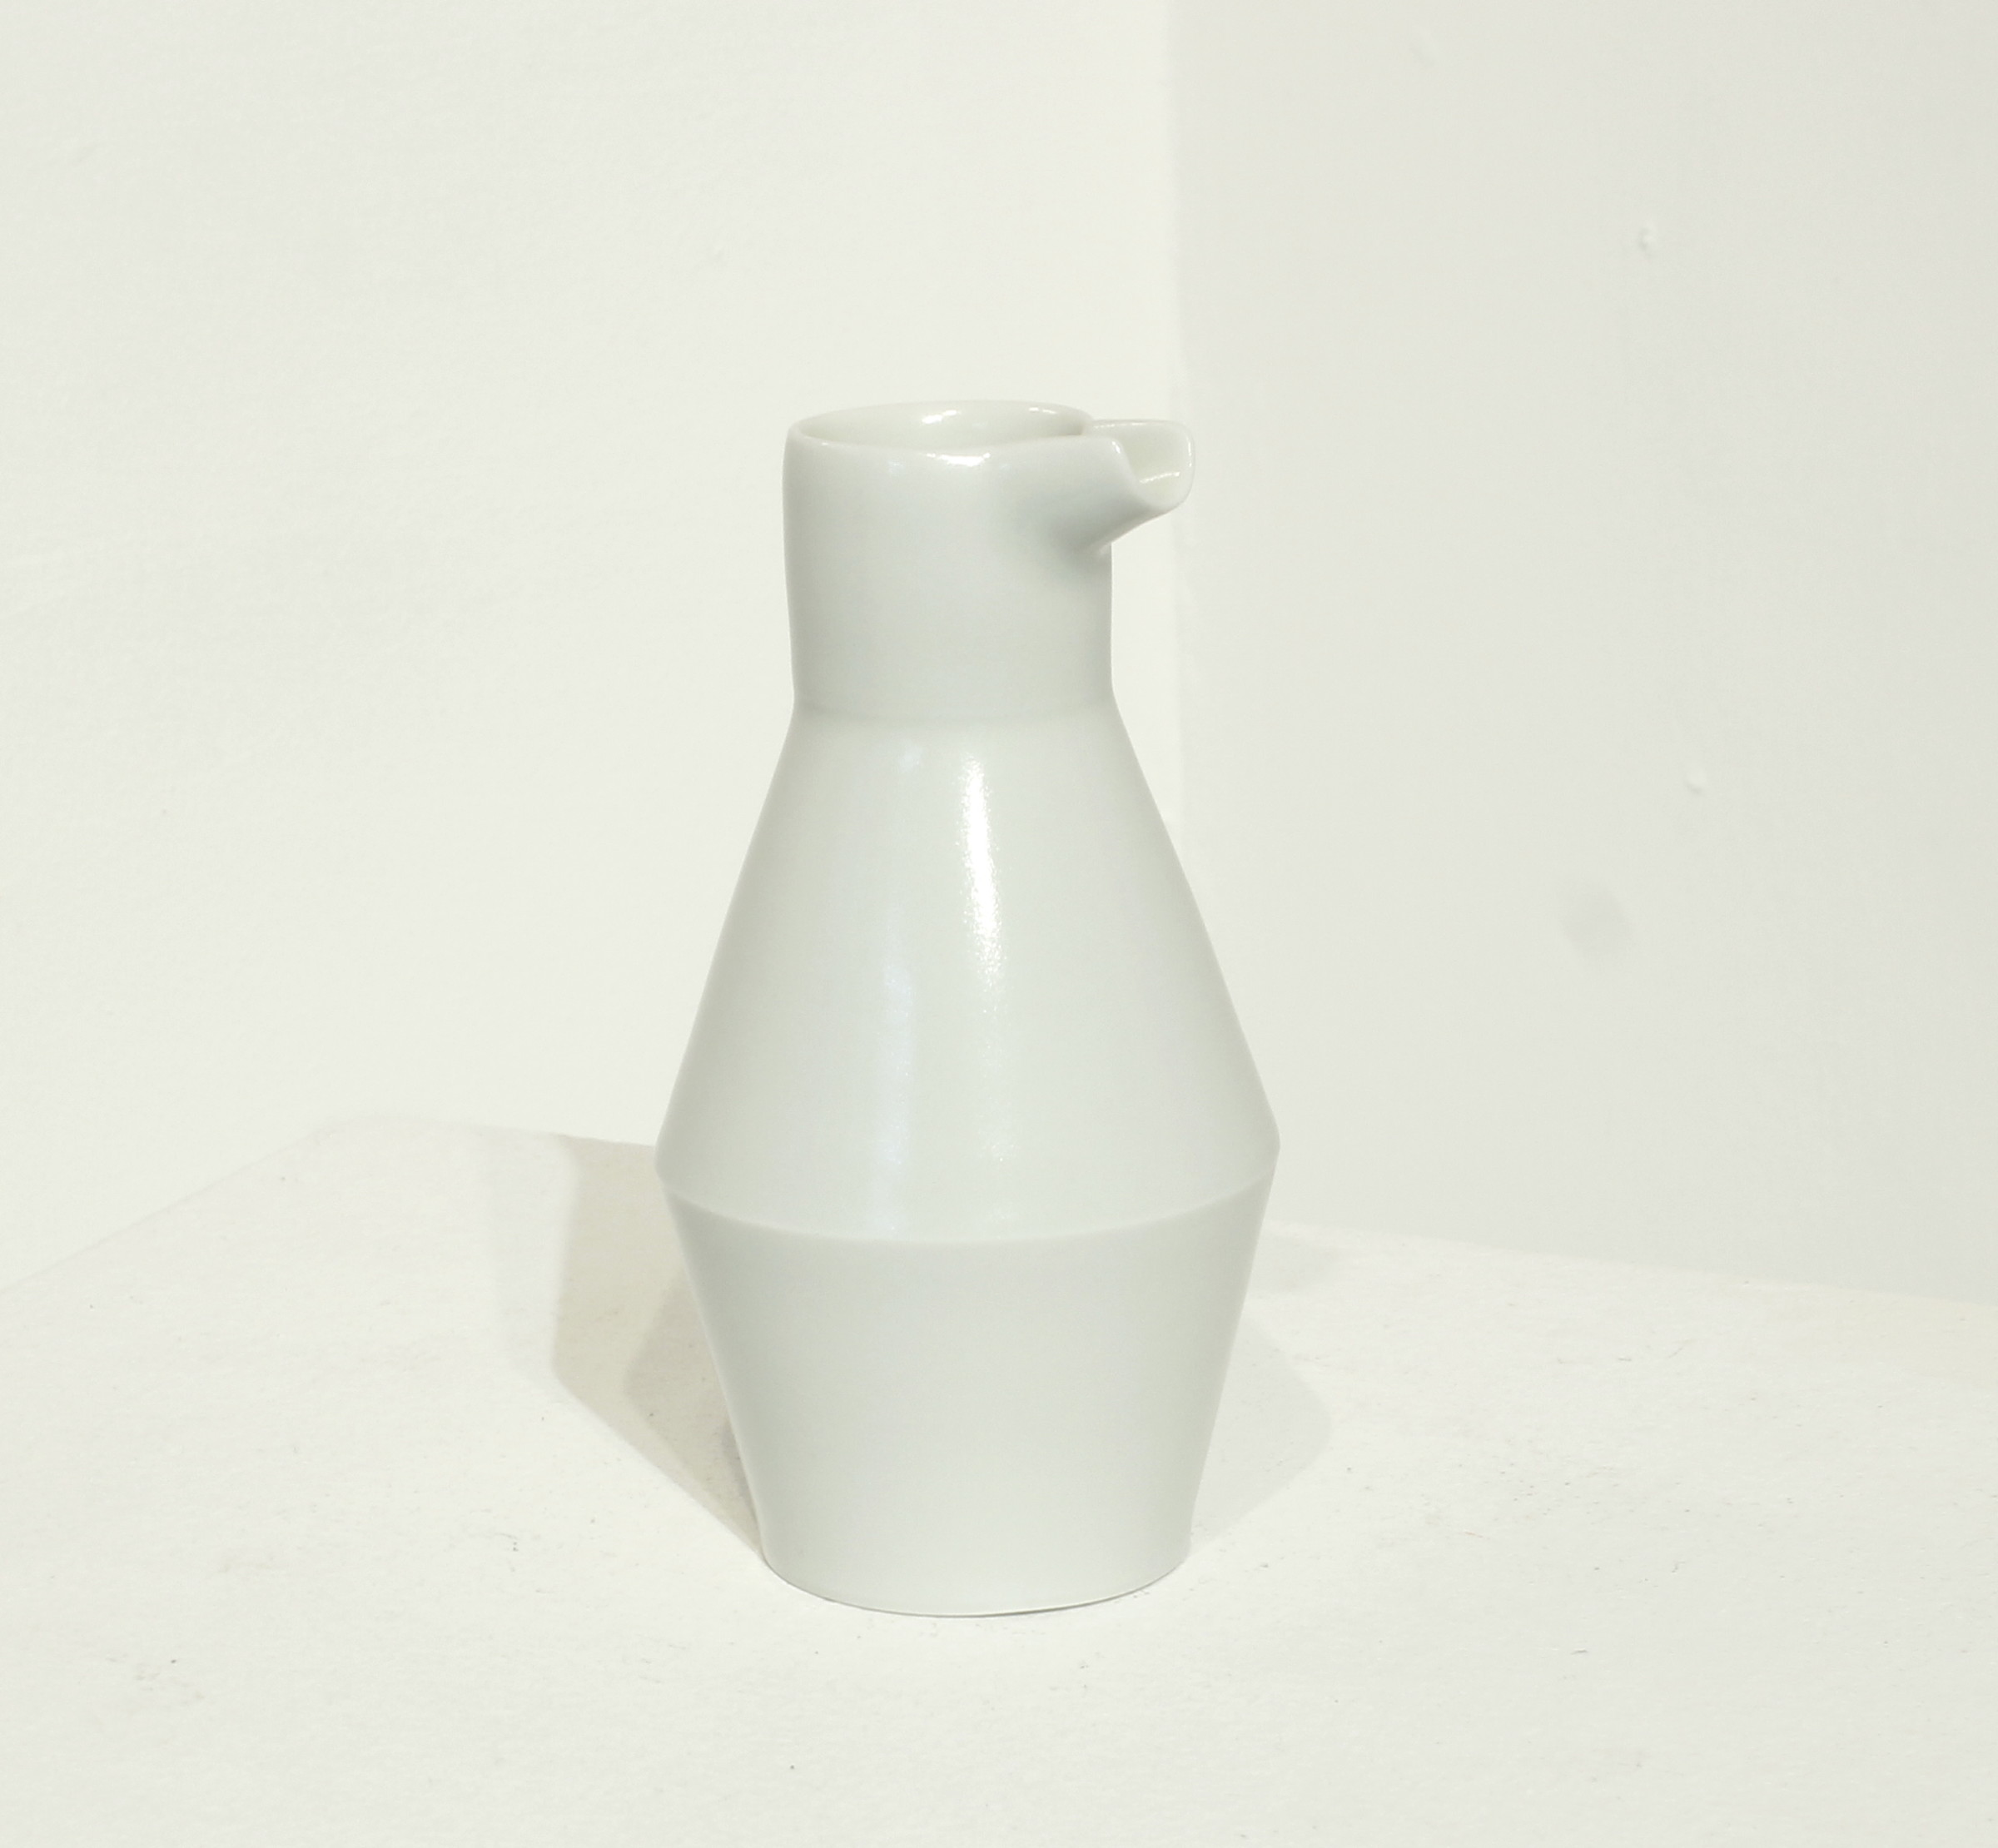 "<span class=""link fancybox-details-link""><a href=""/artists/33-sun-kim/works/5101-sun-kim-milk-jug-2017/"">View Detail Page</a></span><div class=""artist""><strong>Sun Kim</strong></div> <div class=""title""><em>Milk Jug </em>, 2017</div> <div class=""signed_and_dated"">stamped by the artist</div> <div class=""medium"">porcelain</div> <div class=""dimensions"">h. 12 x w. 7 cm </div>"